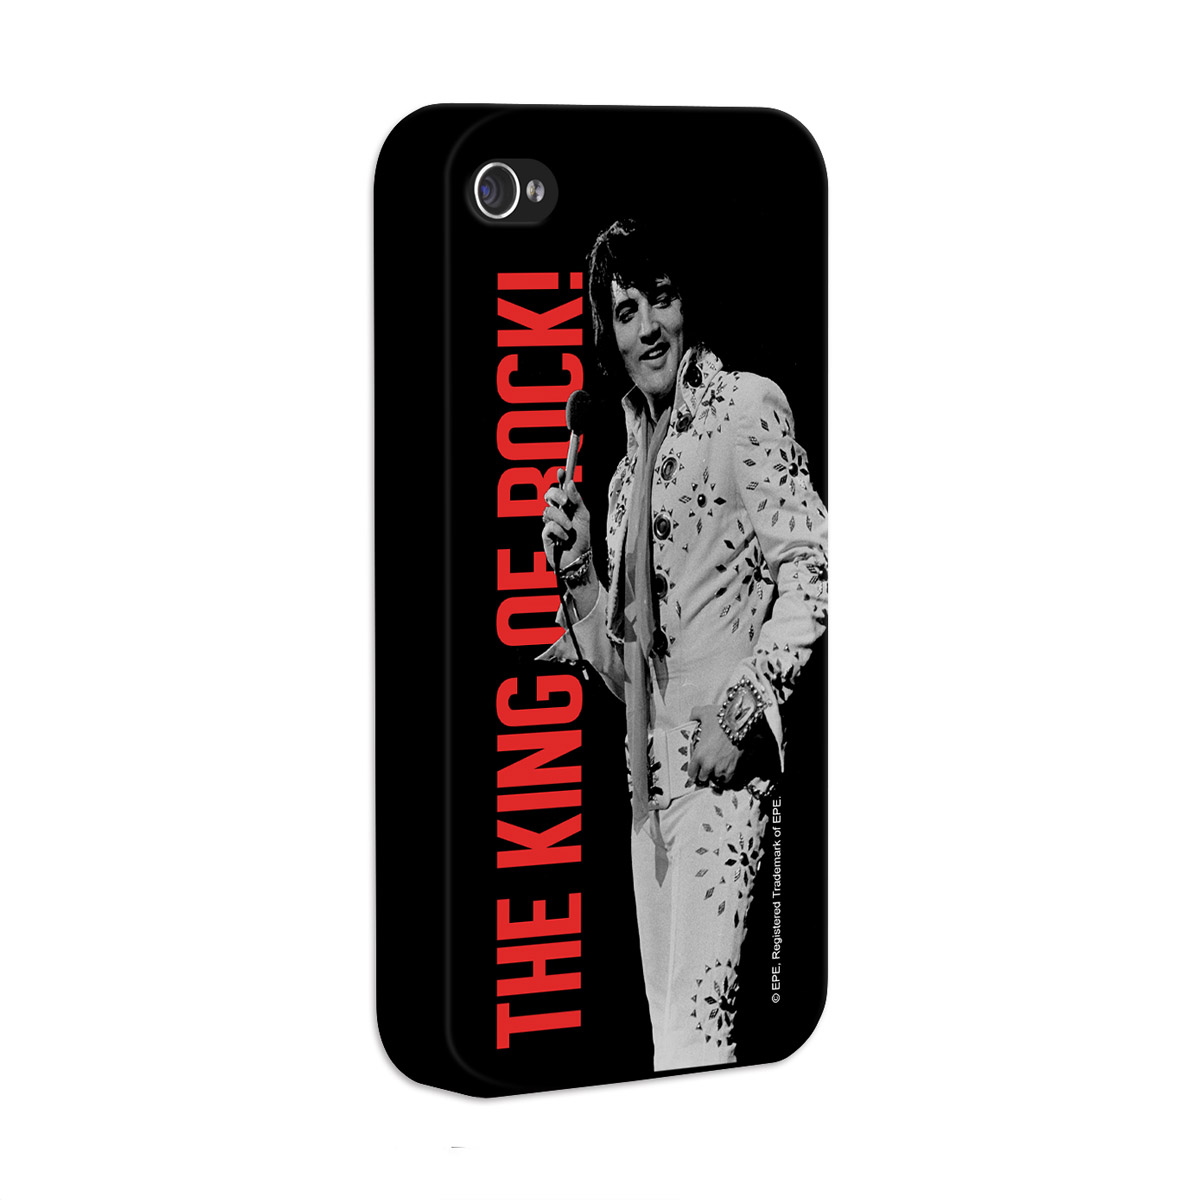 Kit Com 3 Capas de iPhone 4/4S Elvis Presley The King